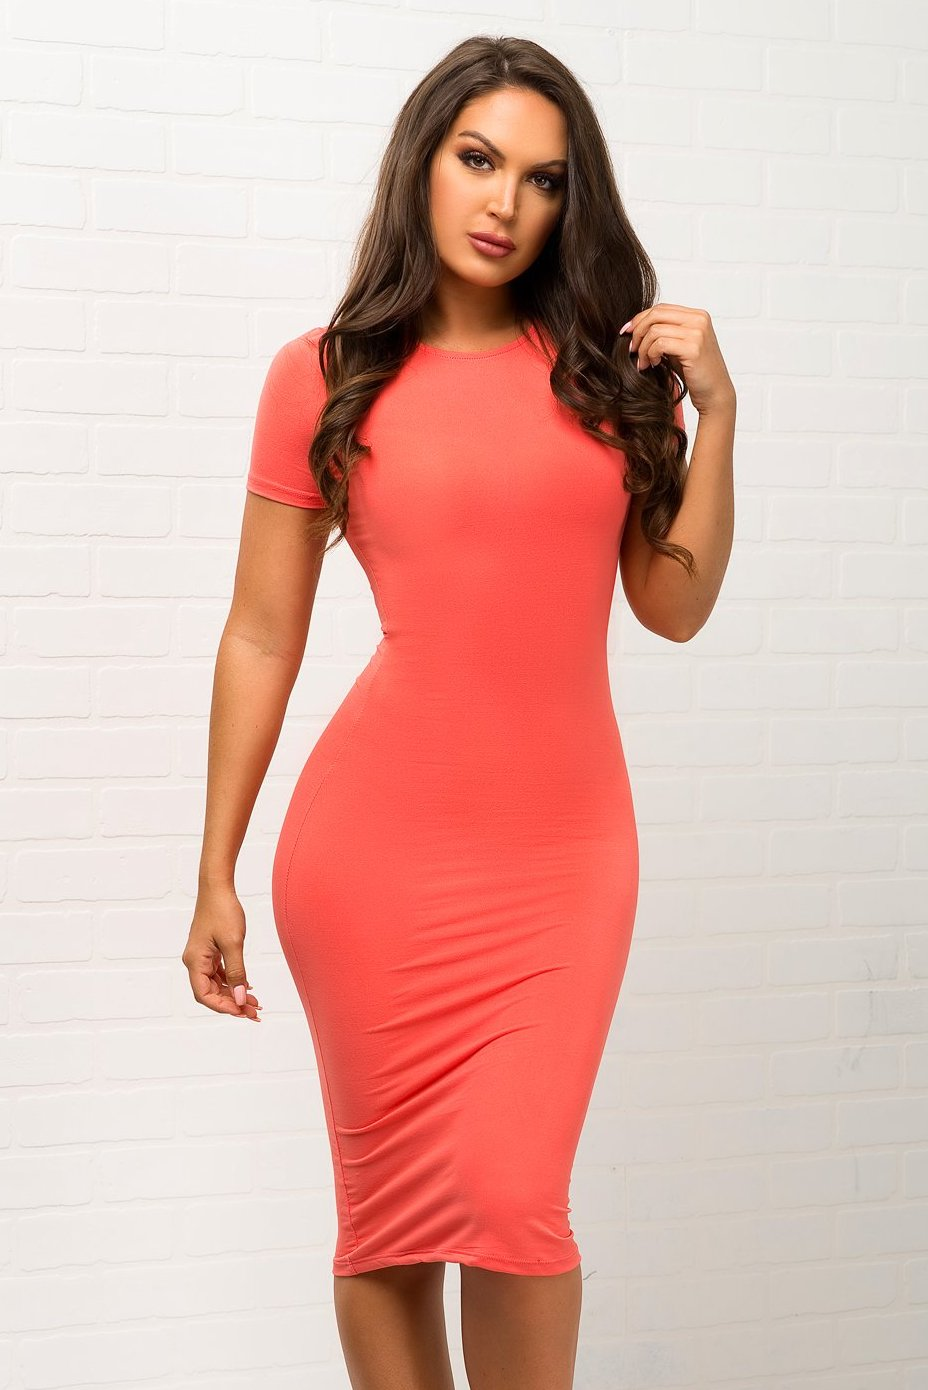 You Belong To Me Dress - Coral